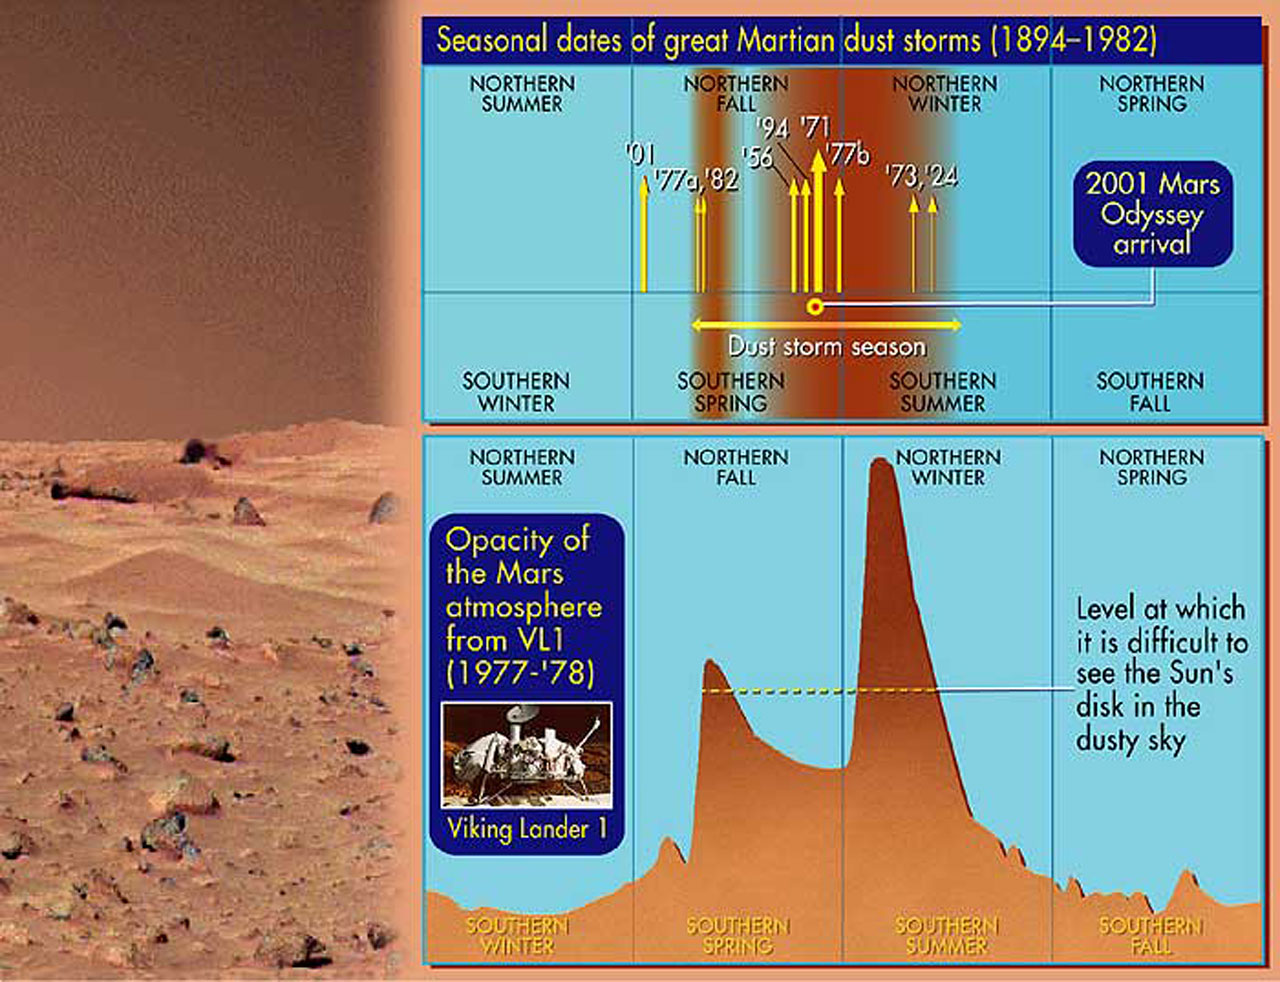 Seasonal Dates of Great Martian Dust Storms (1894-1982)